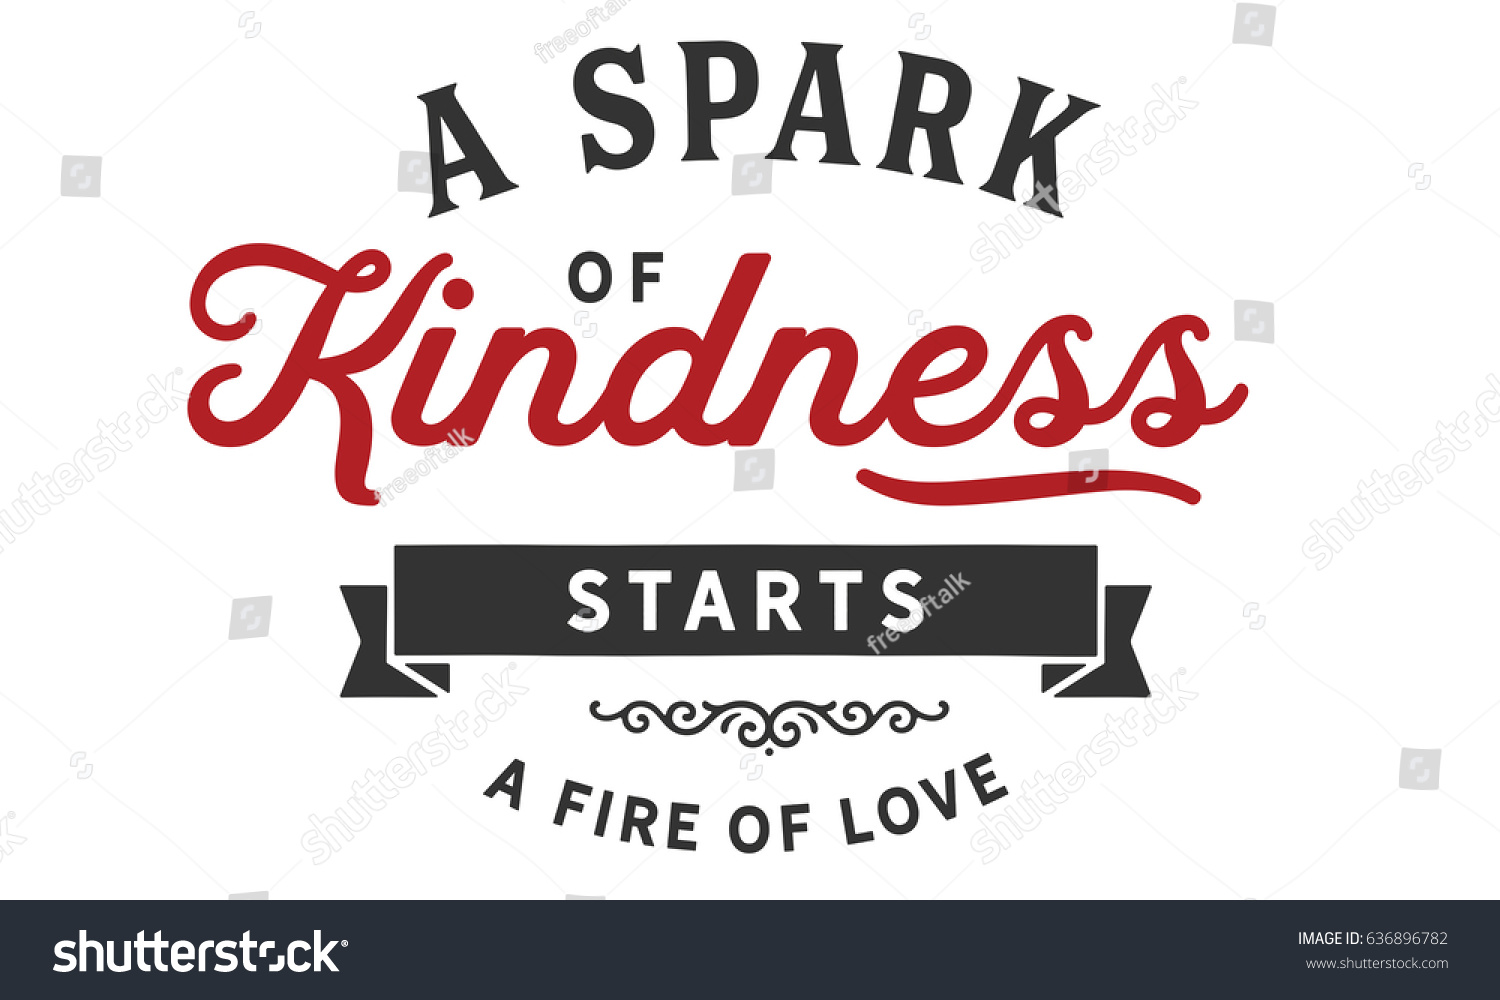 Quotes Kindness Spark Kindness Starts Fire Love Kindness Stock Vector 636896782